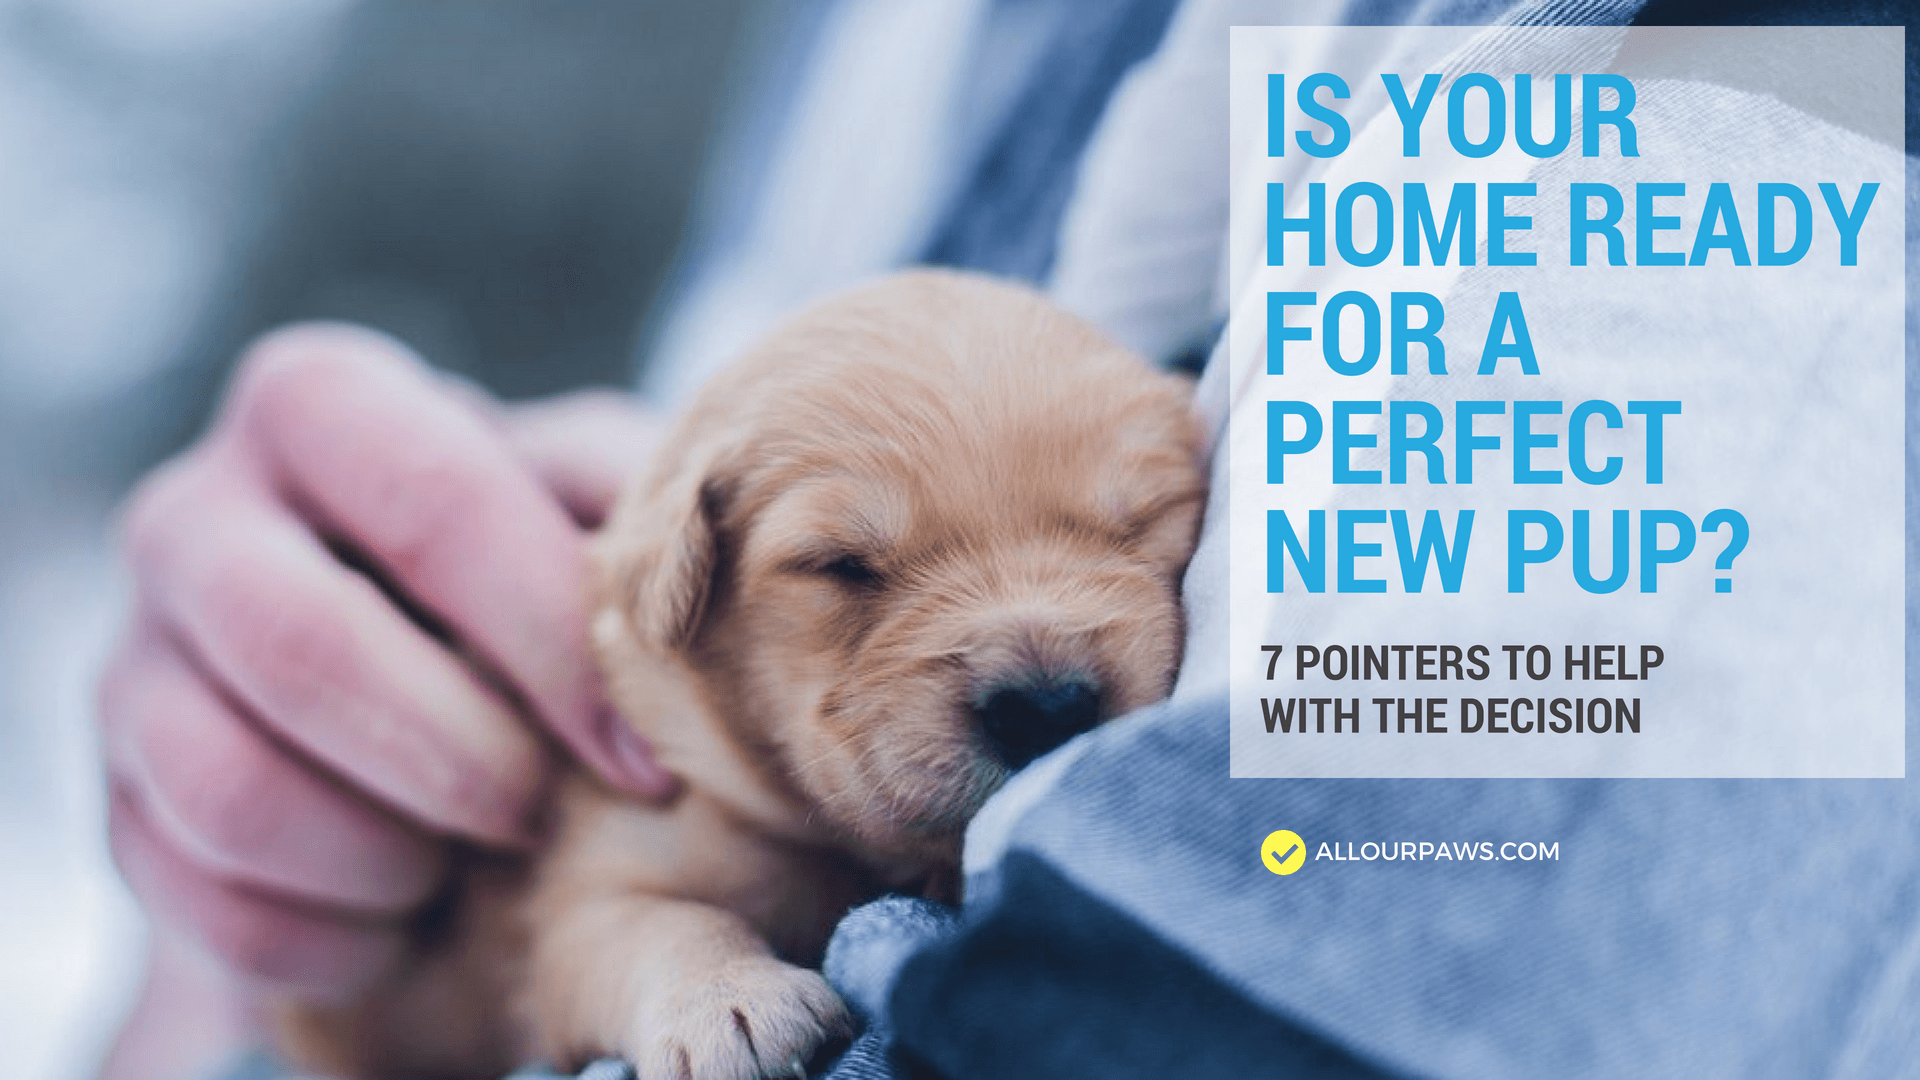 Is Your Home Ready for a Perfect New Pup? 7 Pointers to Help With the Decision